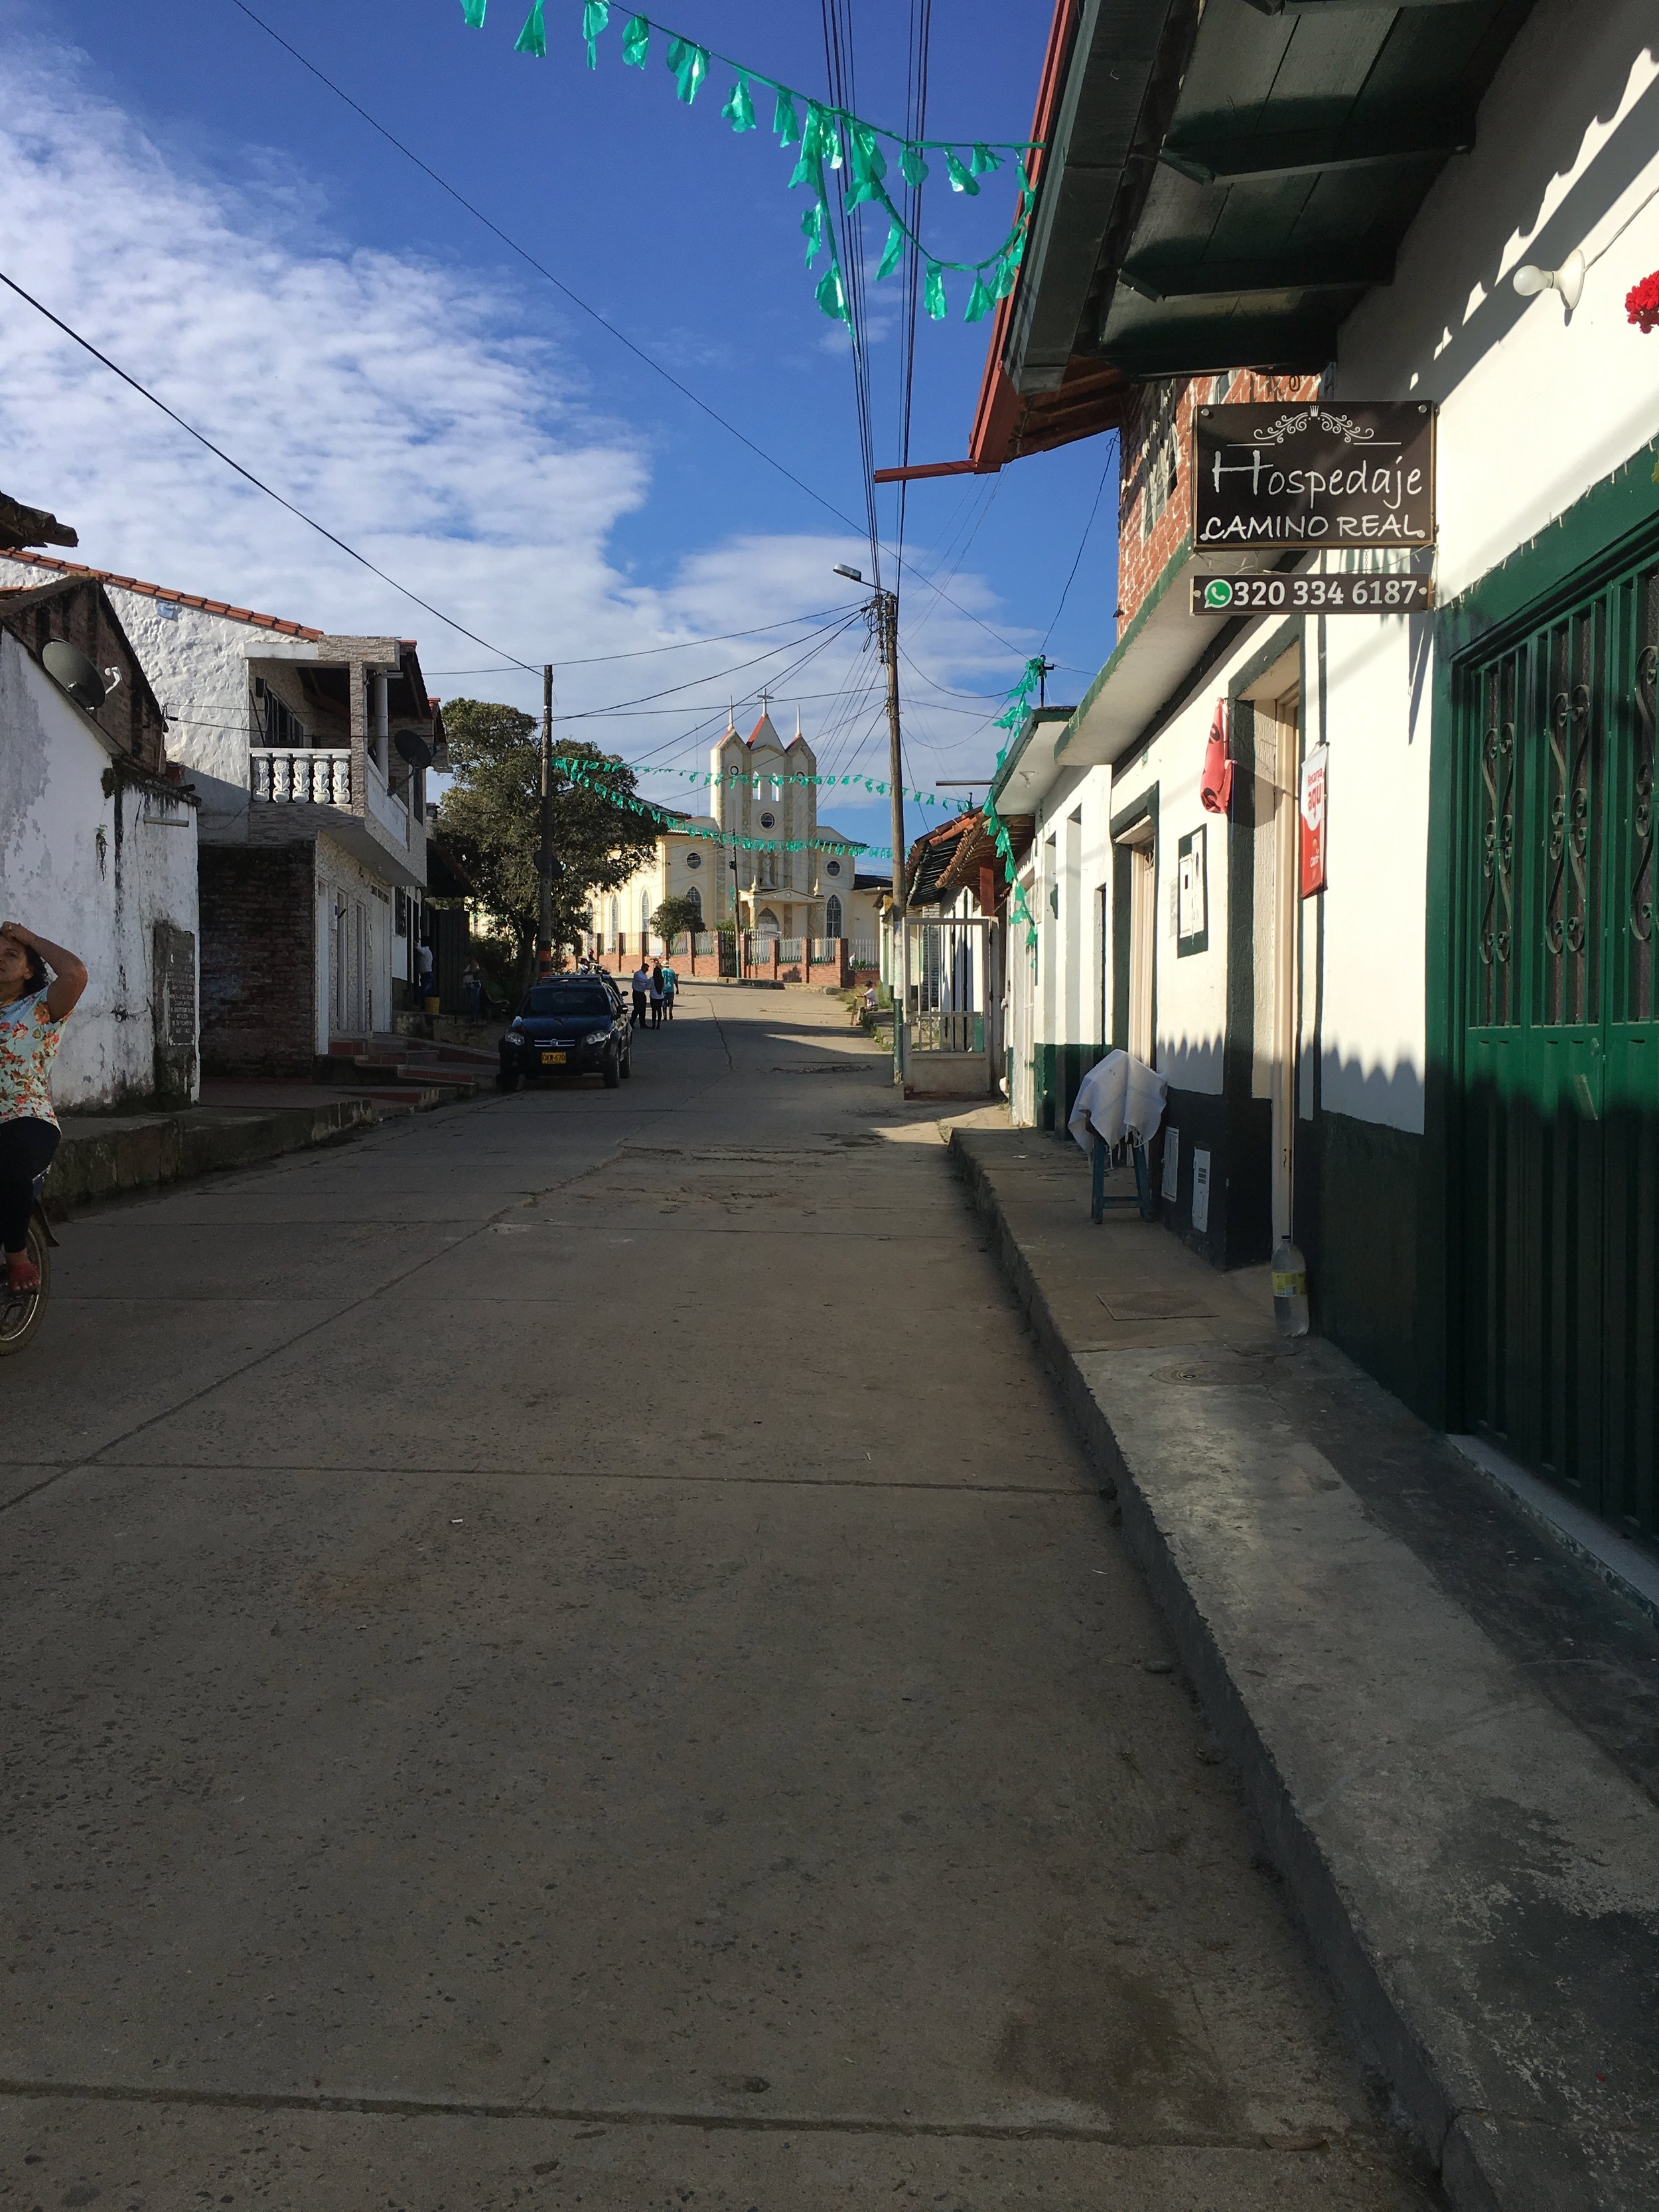 The small town of Guadalupe